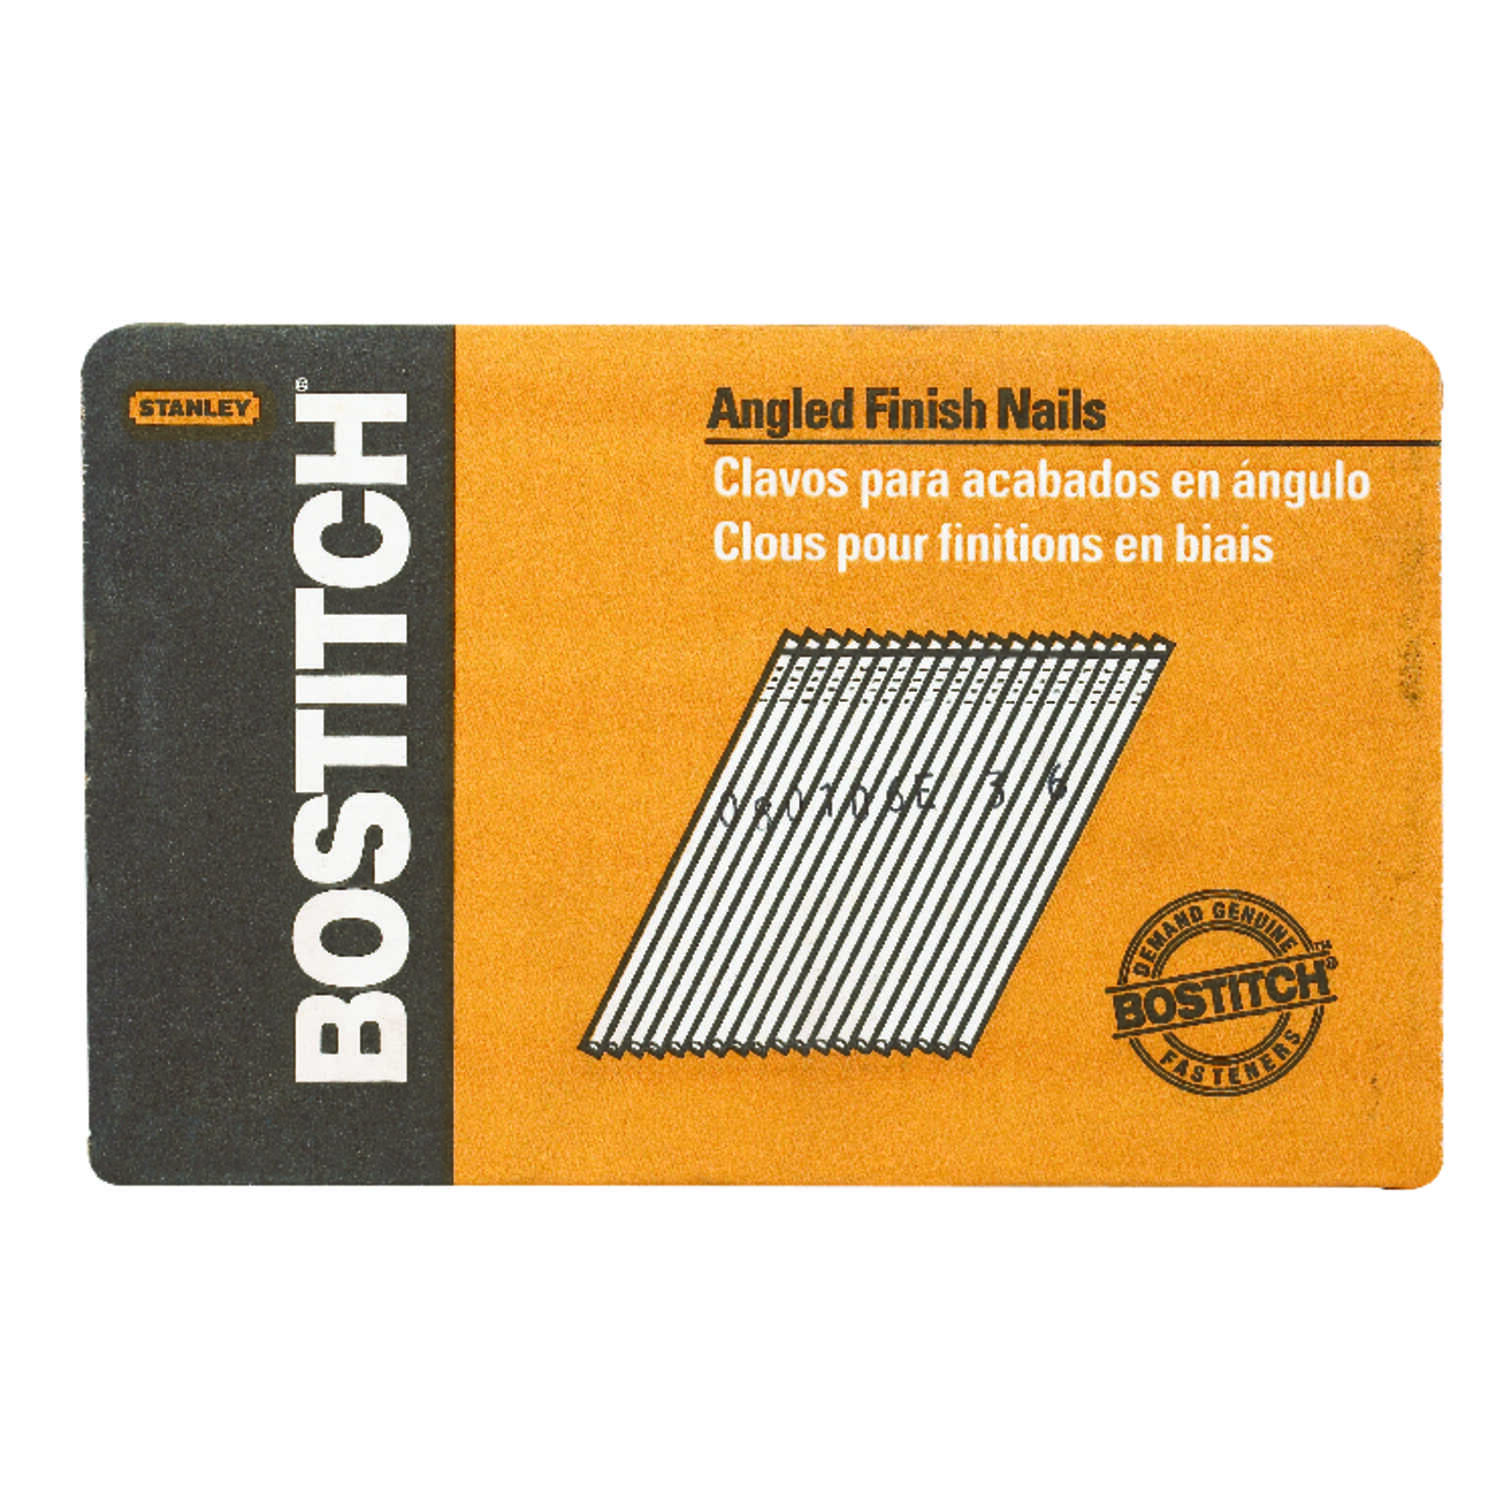 Bostitch  1-1/2 in. 15 Ga. Angled Strip  Finish Nails  Smooth Shank  3655 pk